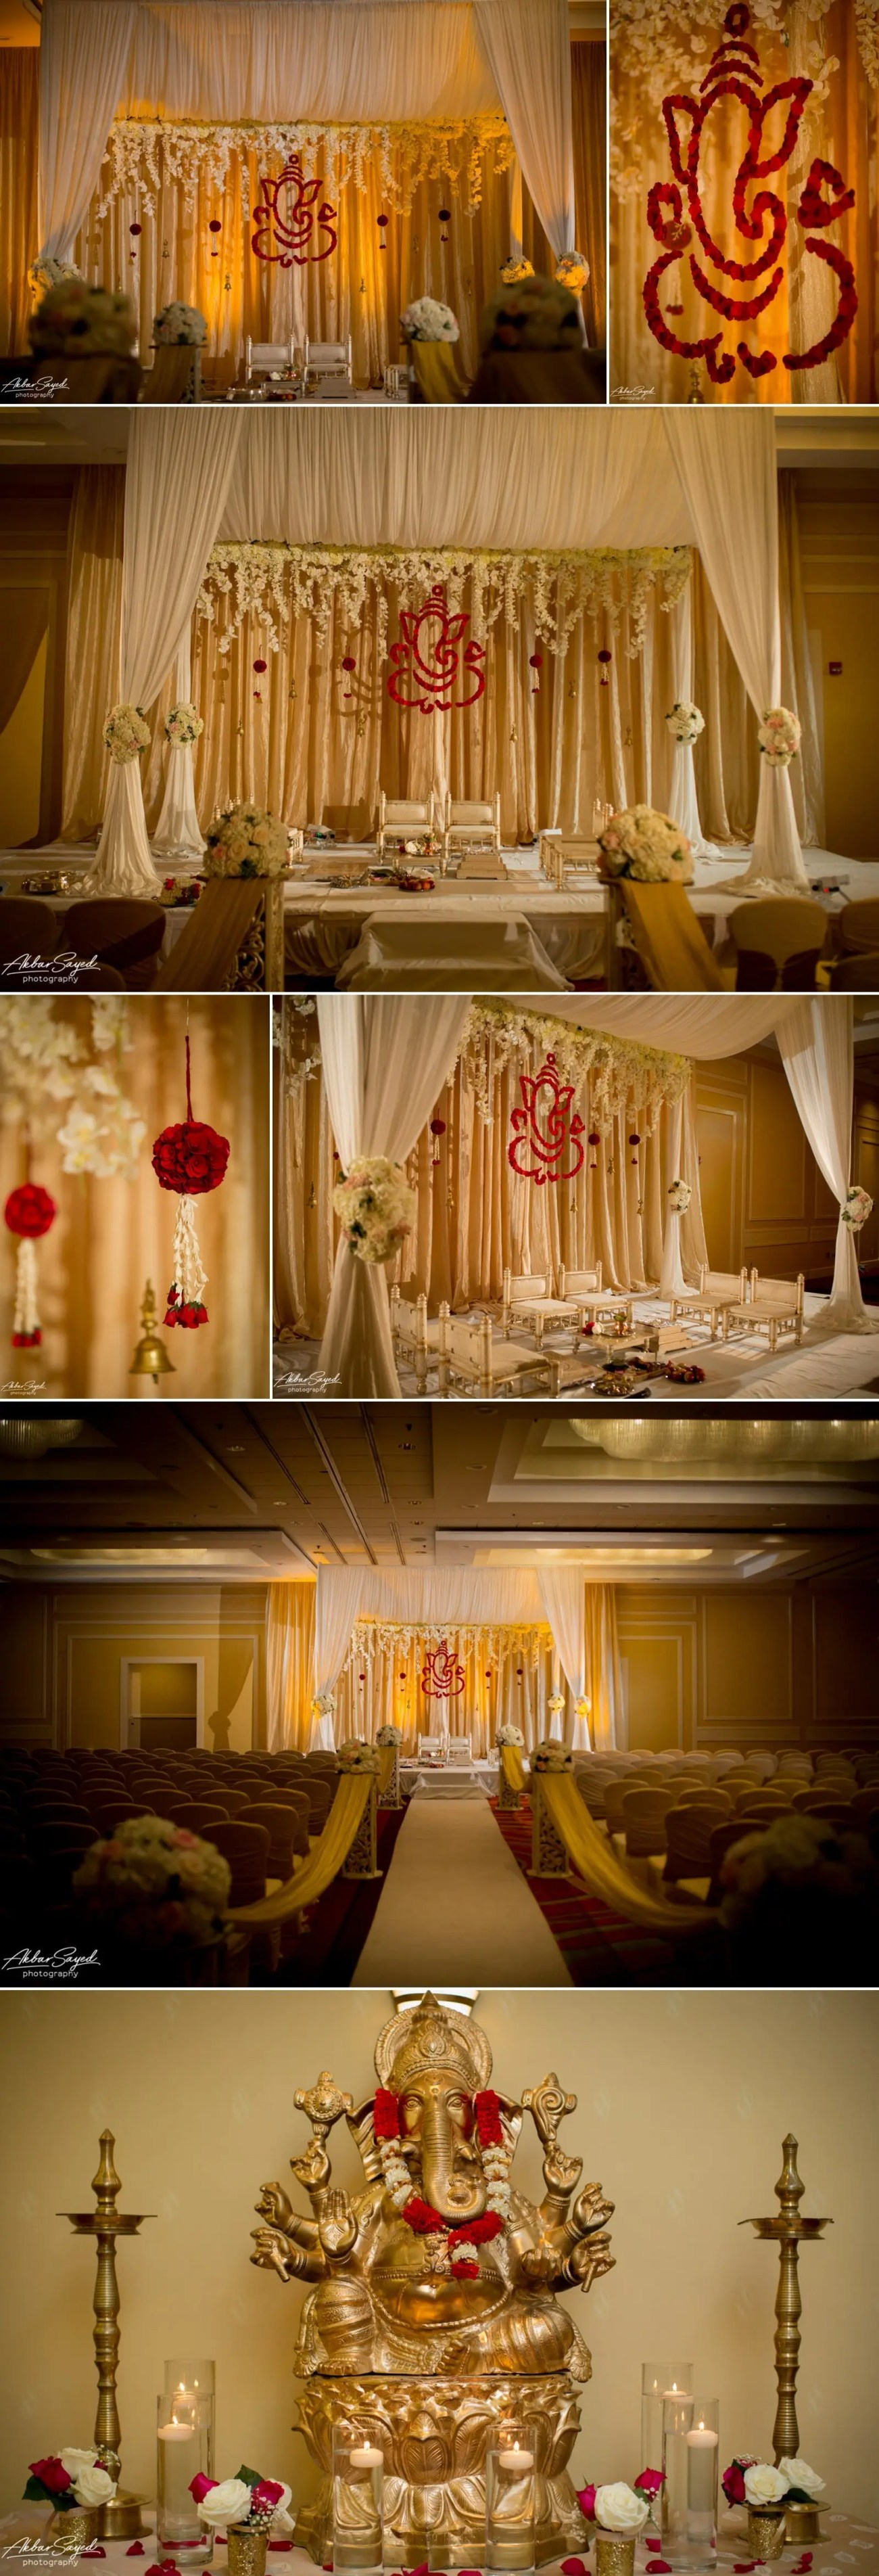 A photo collage of Indian wedding decor at The BWI Marriott in Linthicum, Maryland.